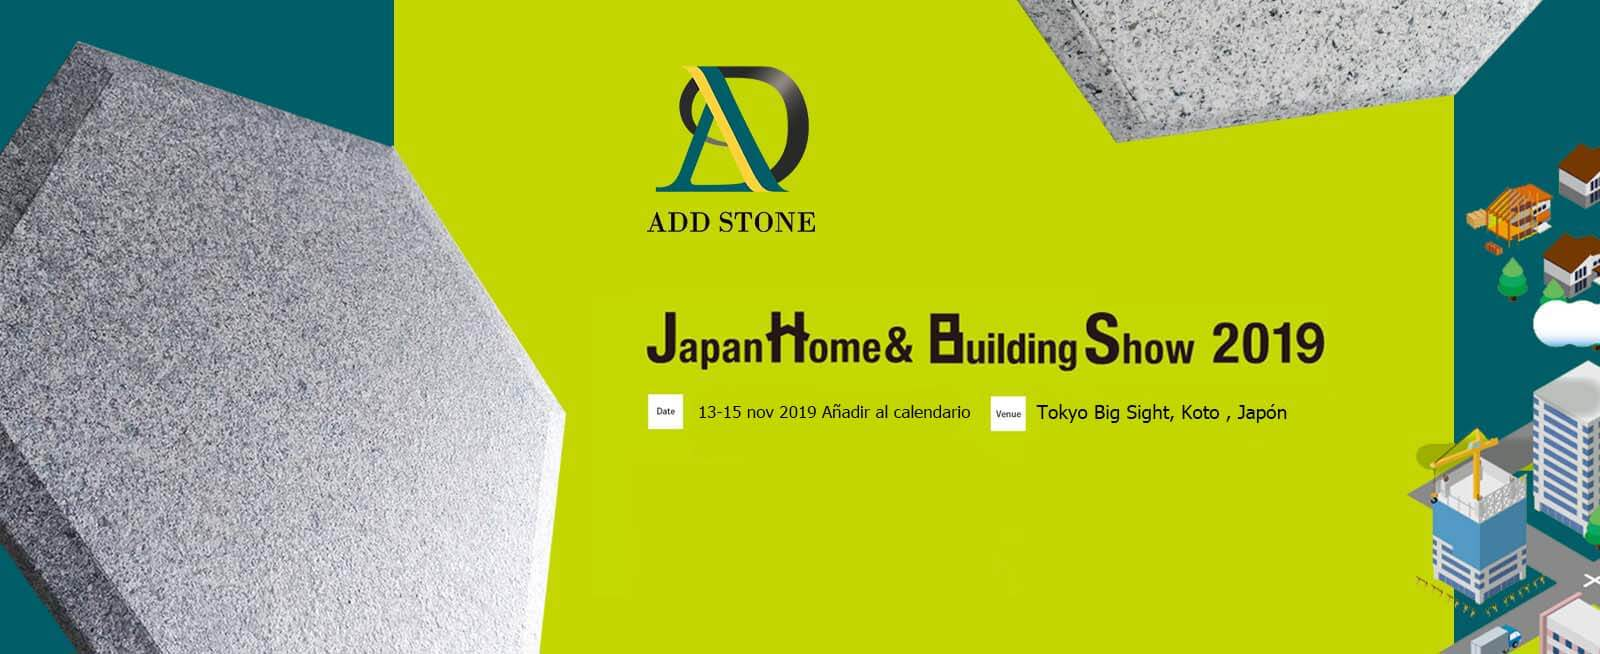 ADD STONE will attend JHBS which is held on Nov. 13th, 2019 at Tokyo International Exhibition Center.